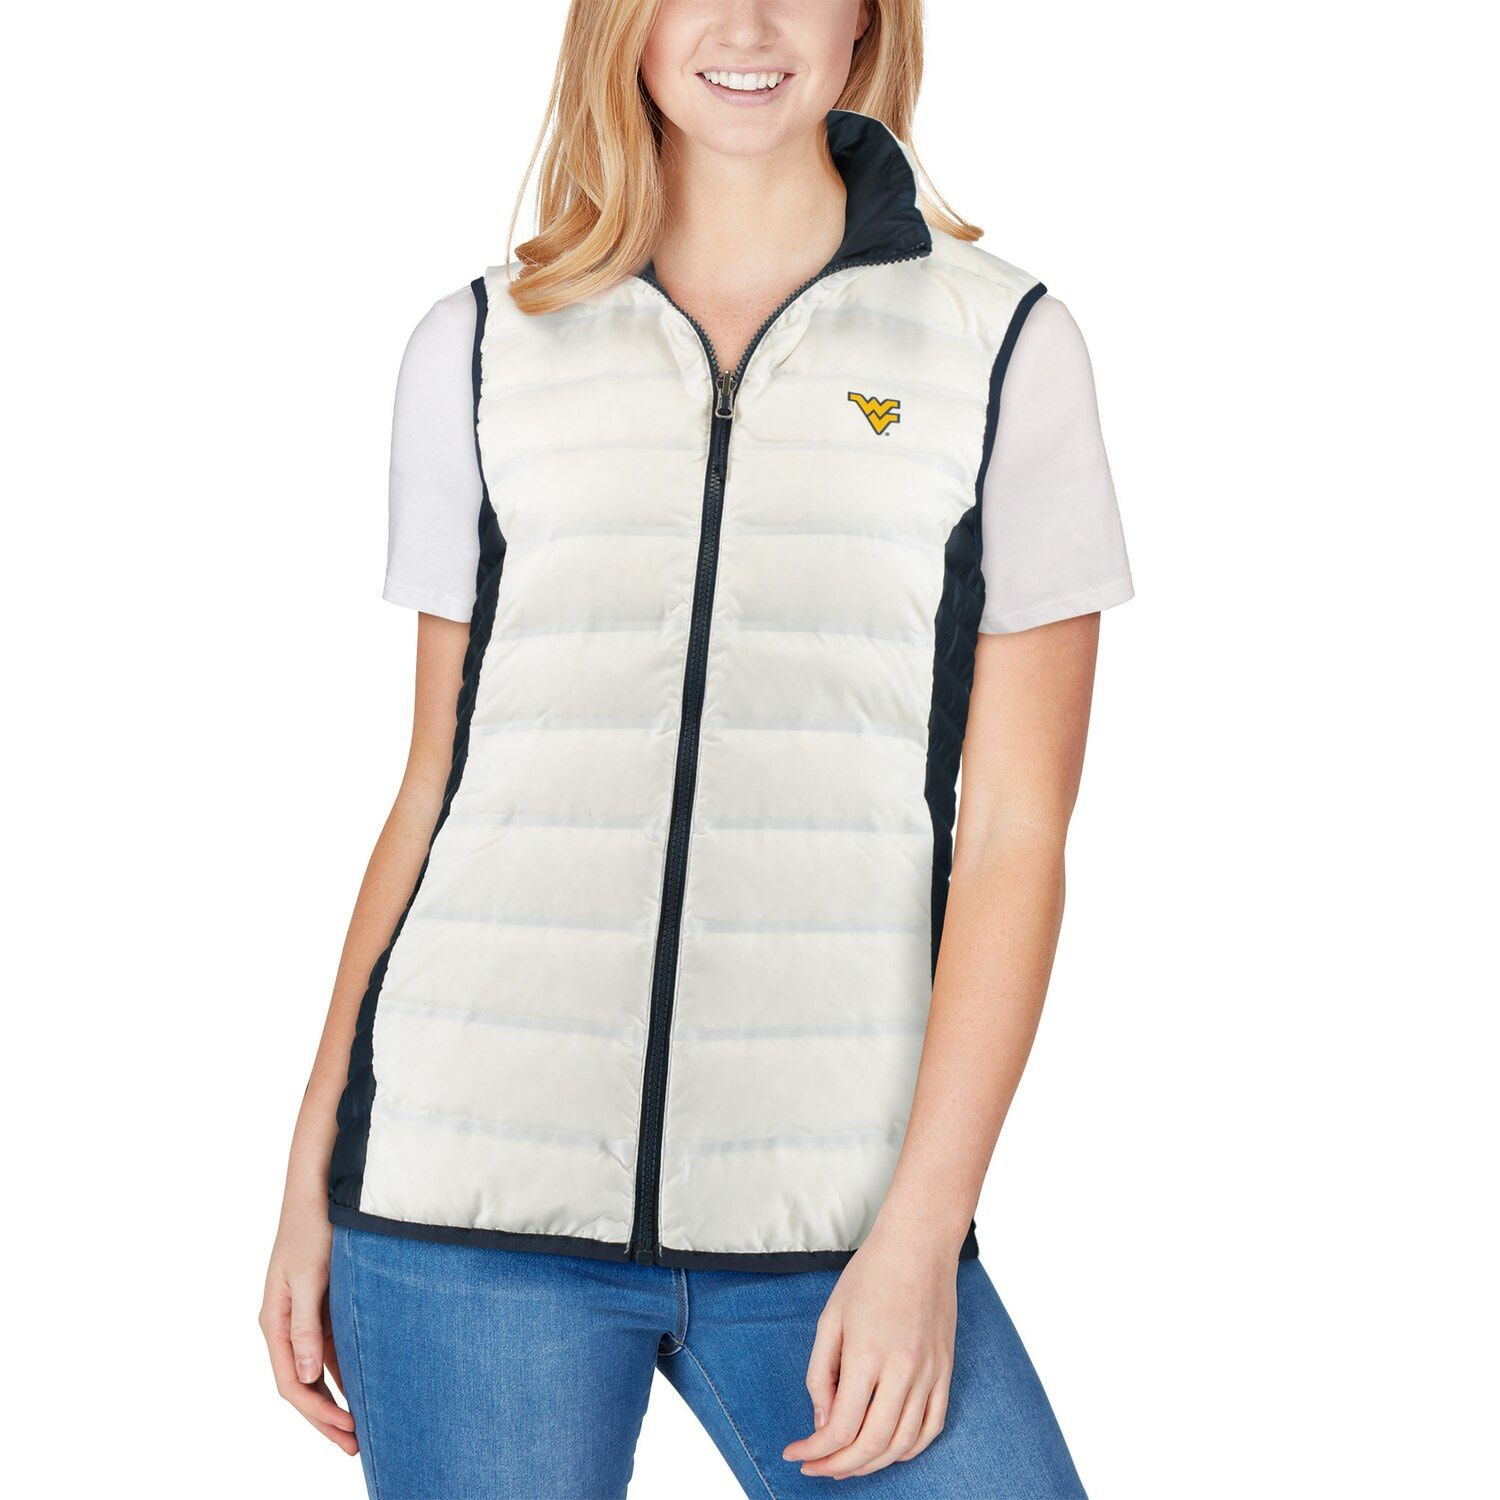 Women's Columbia White/Navy West Virginia Mountaineers Lake 22 Reversible Puffer Vest #westvirginia